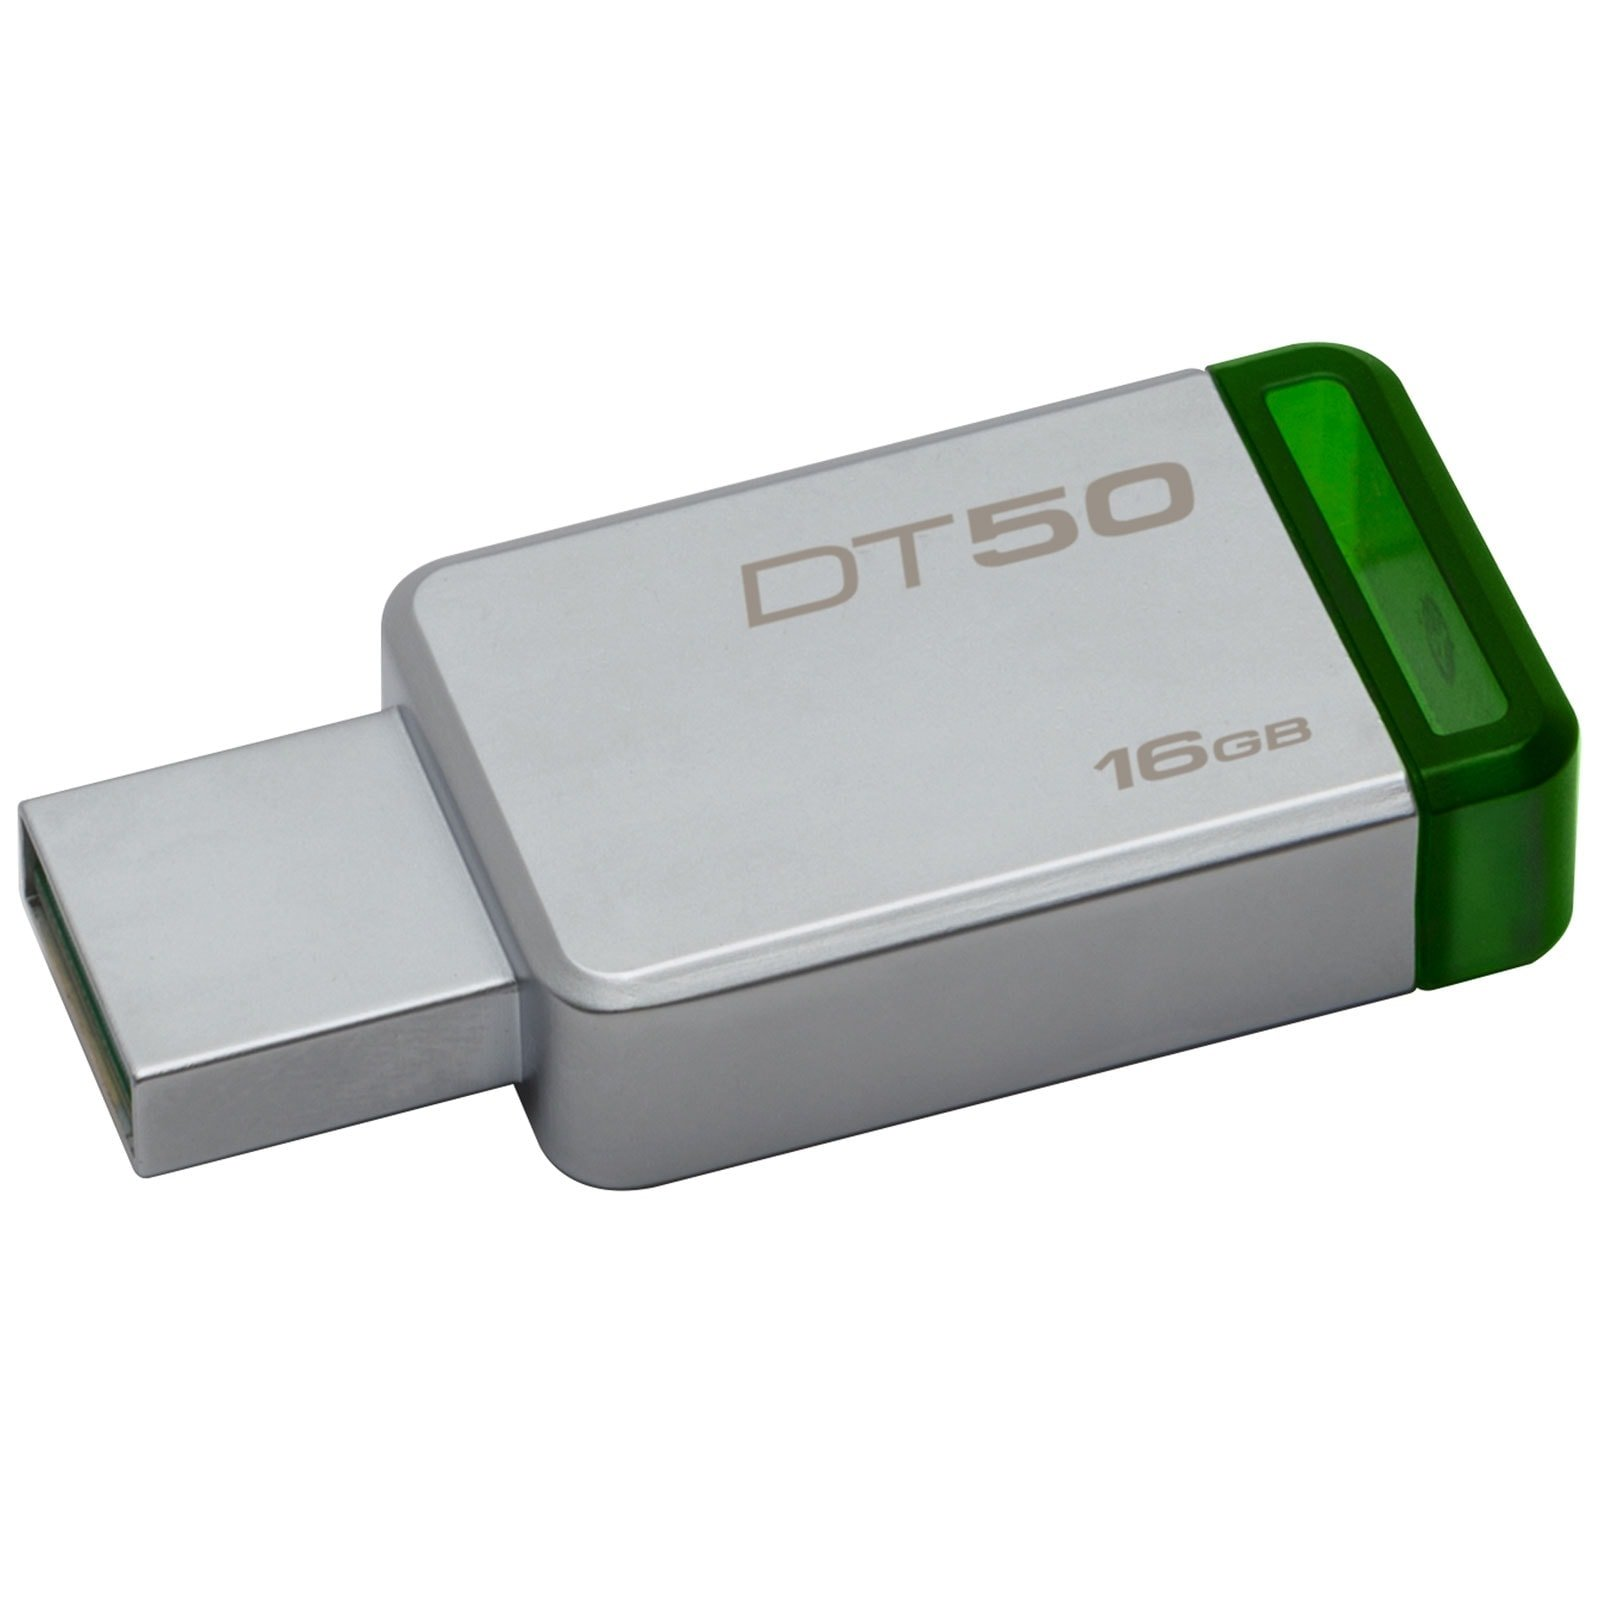 Kingston 16Go USB 3.1 - Clé USB Kingston - Cybertek.fr - 0